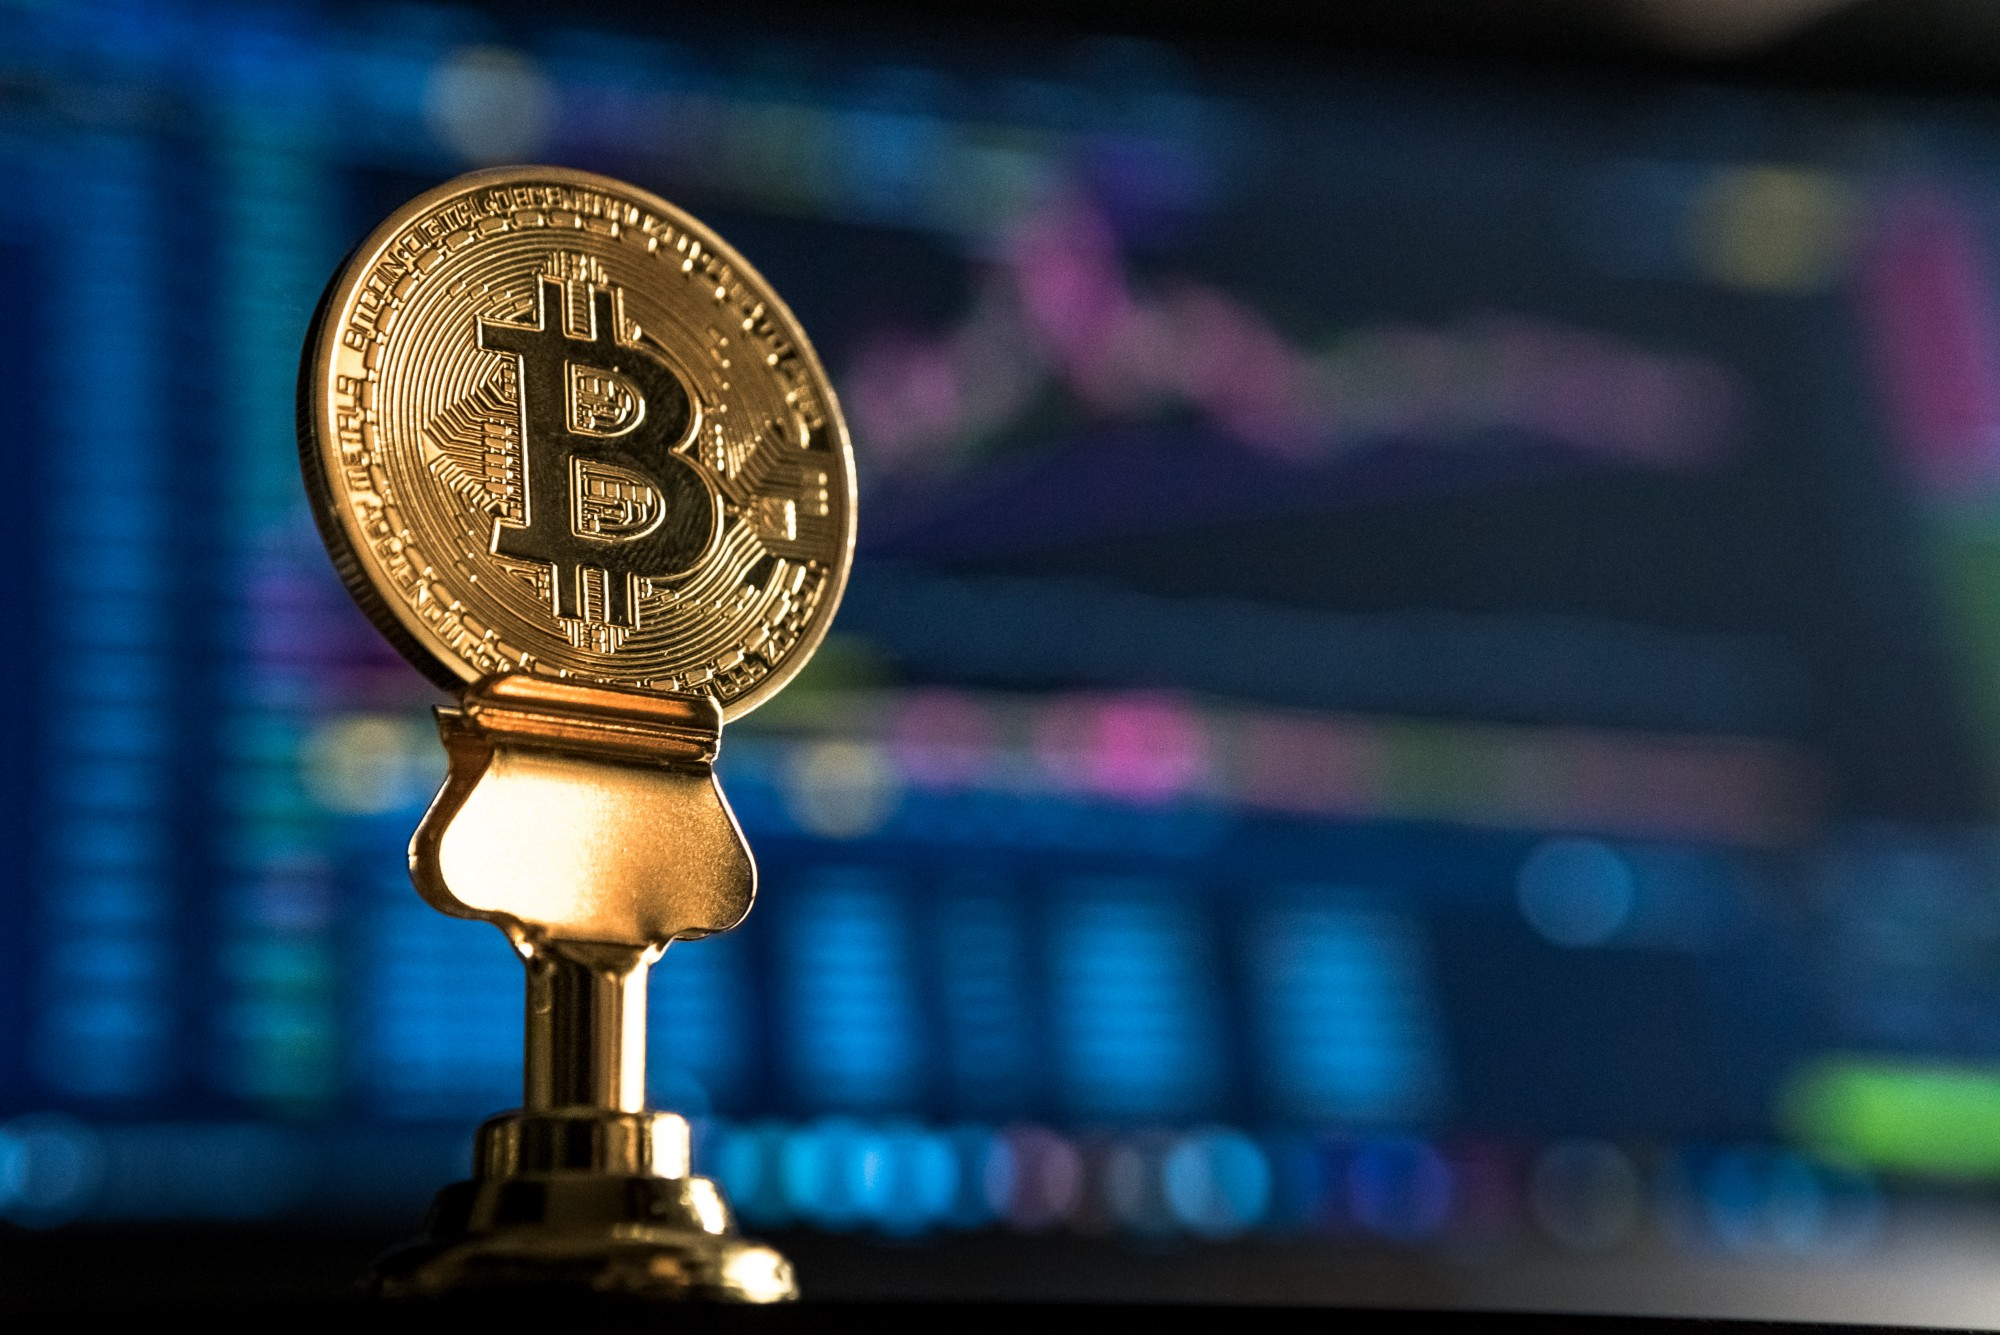 A Bitcoin sits on desk with stock charts in the background